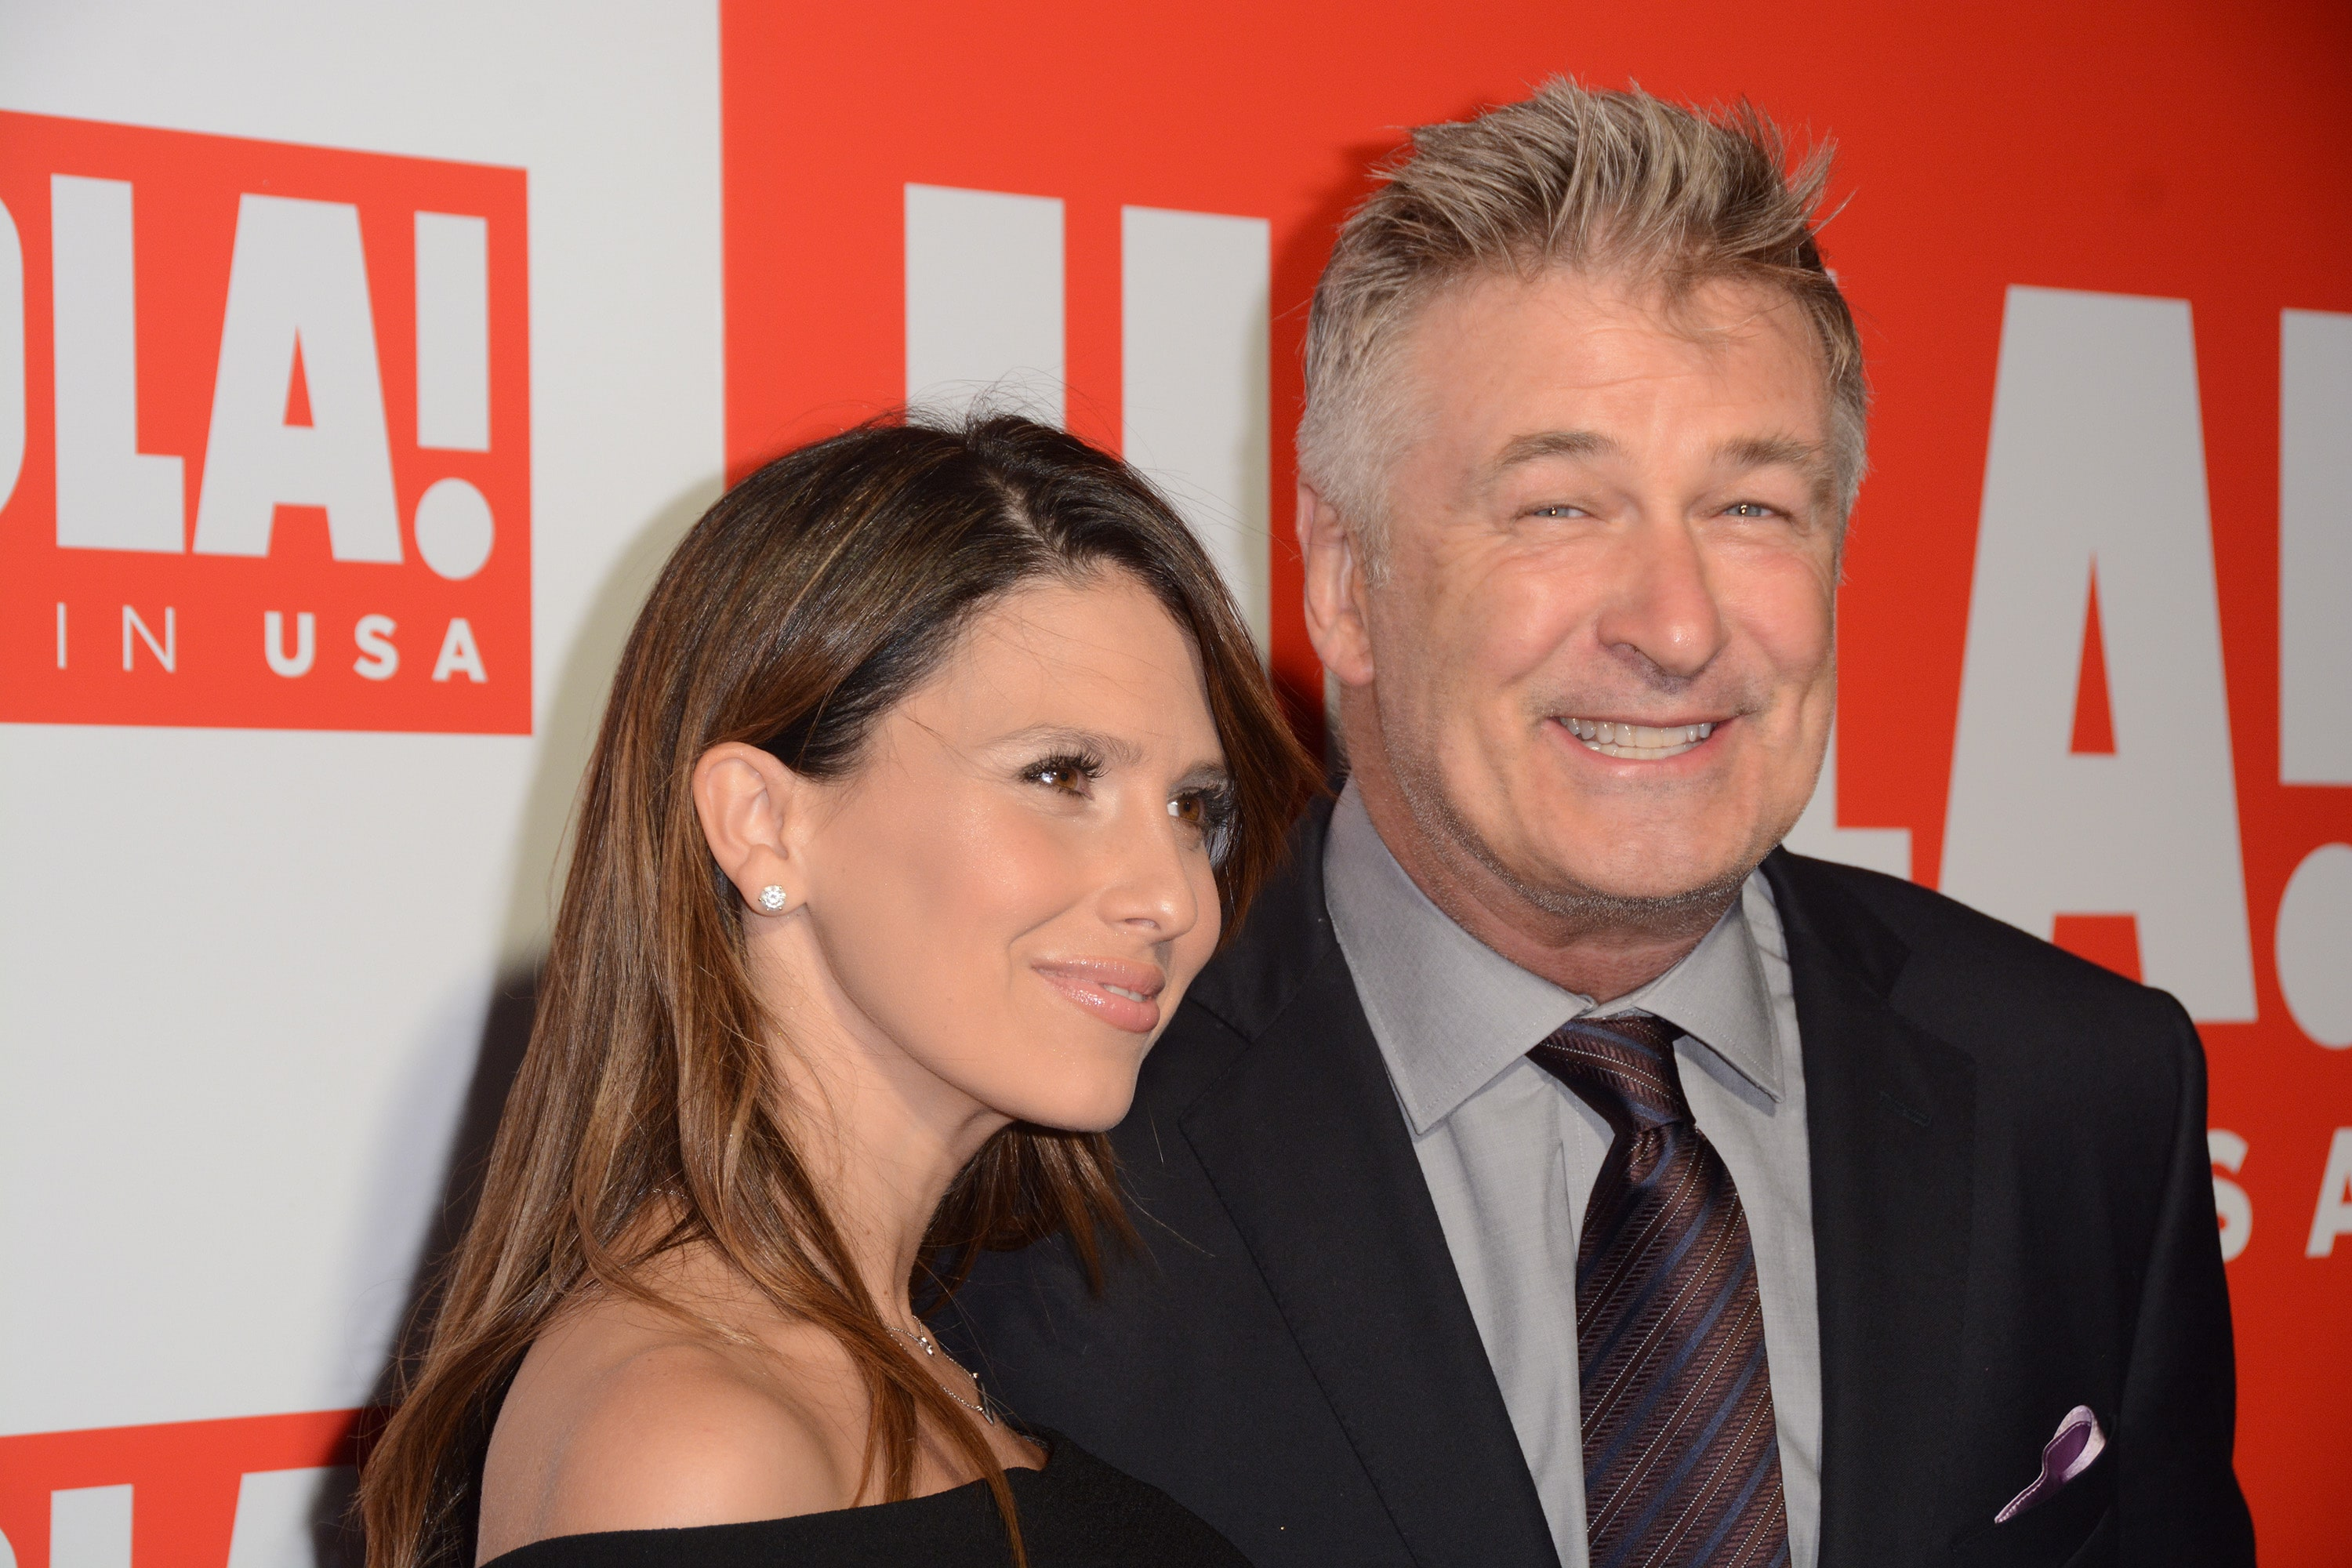 Alec and Hilaria Baldwin are expecting their fourth baby together. (Photo: WENN)